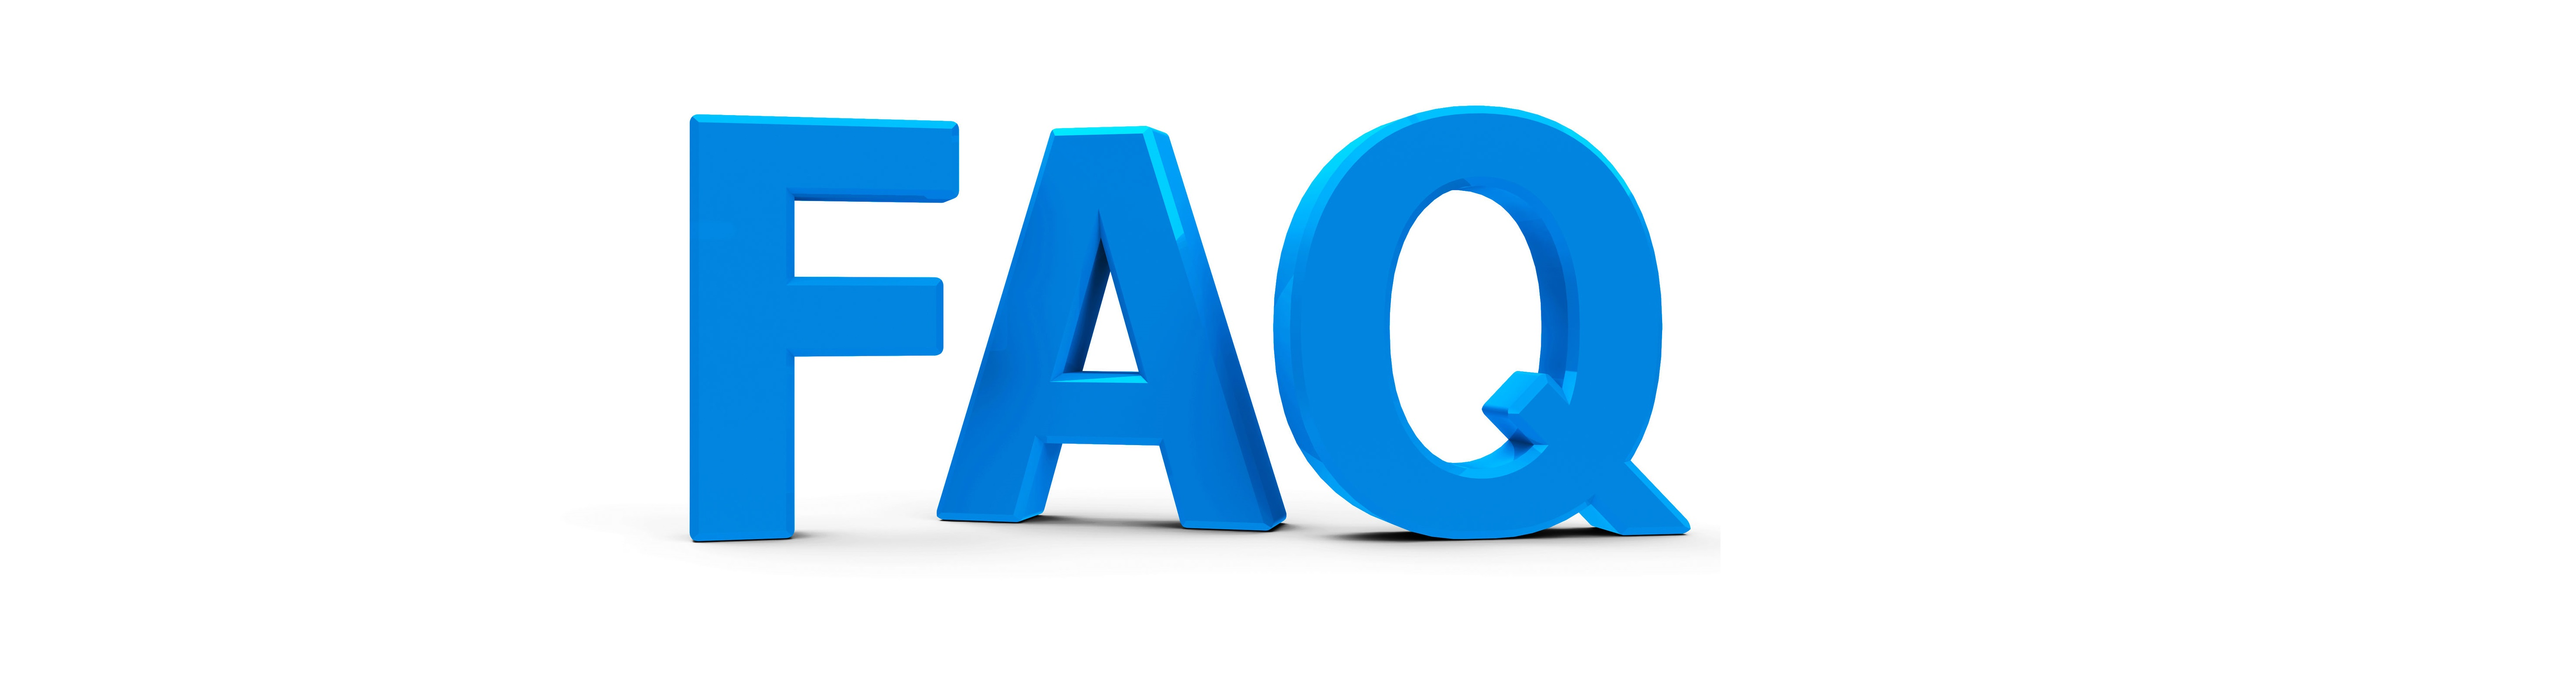 41255088 - blue faq symbol, icons or button isolated on white background, three-dimensional rendering